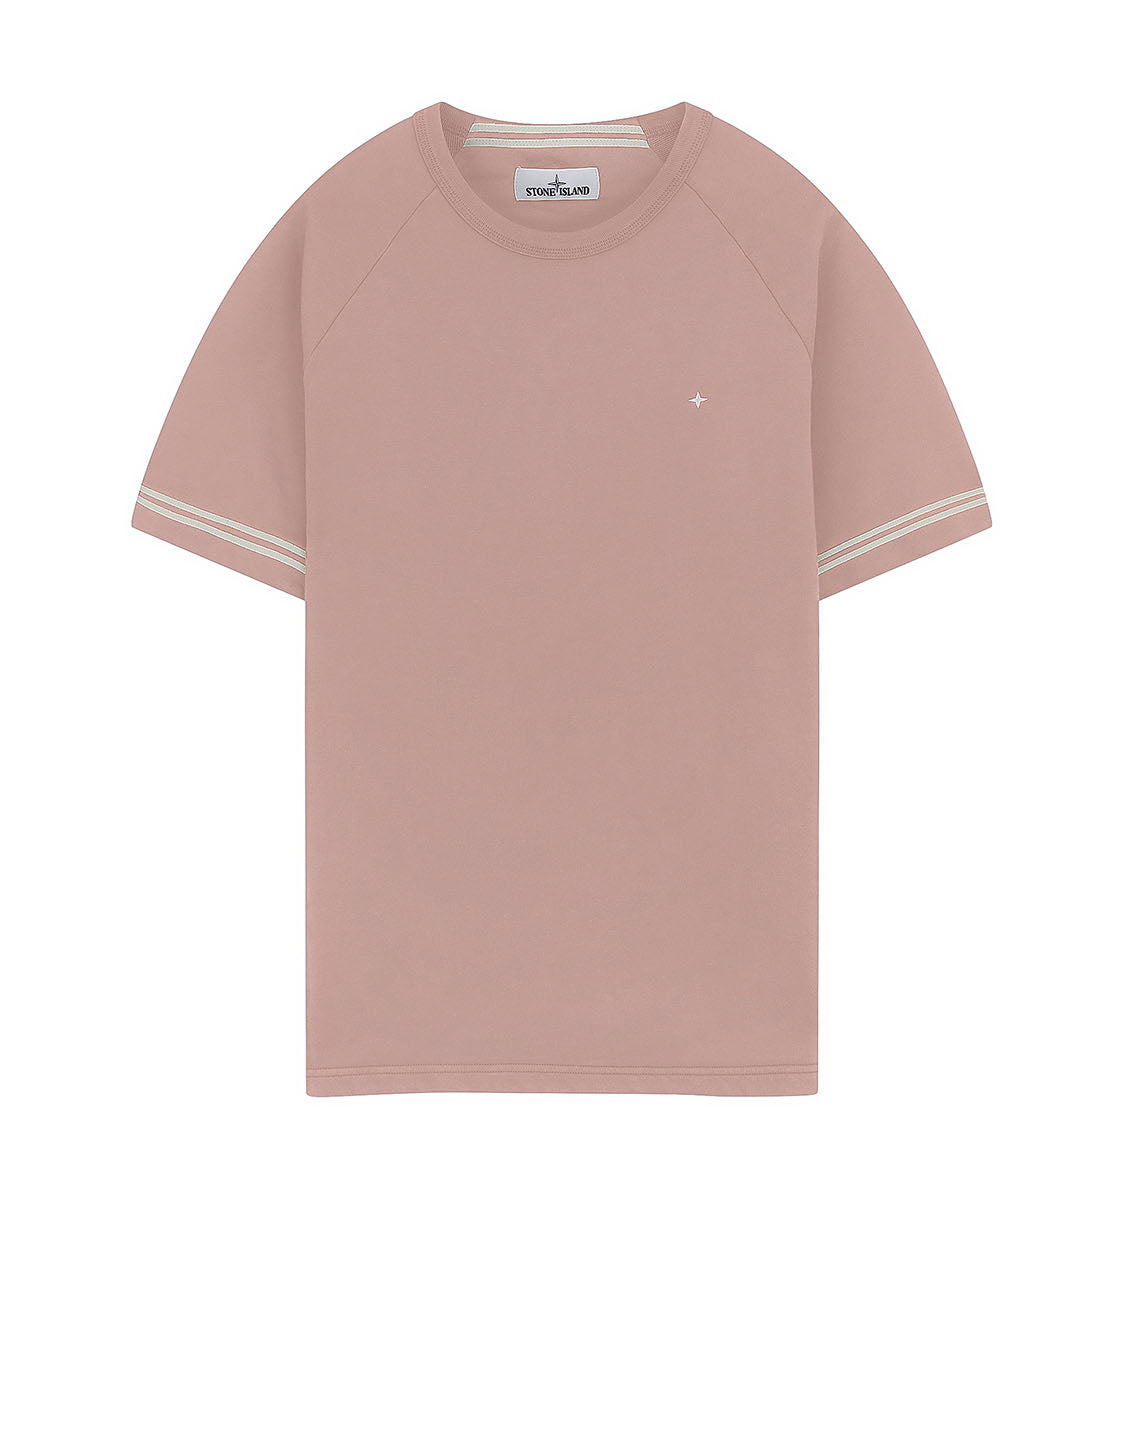 60651 Short Sleeve Sweatshirt in Onion Pink